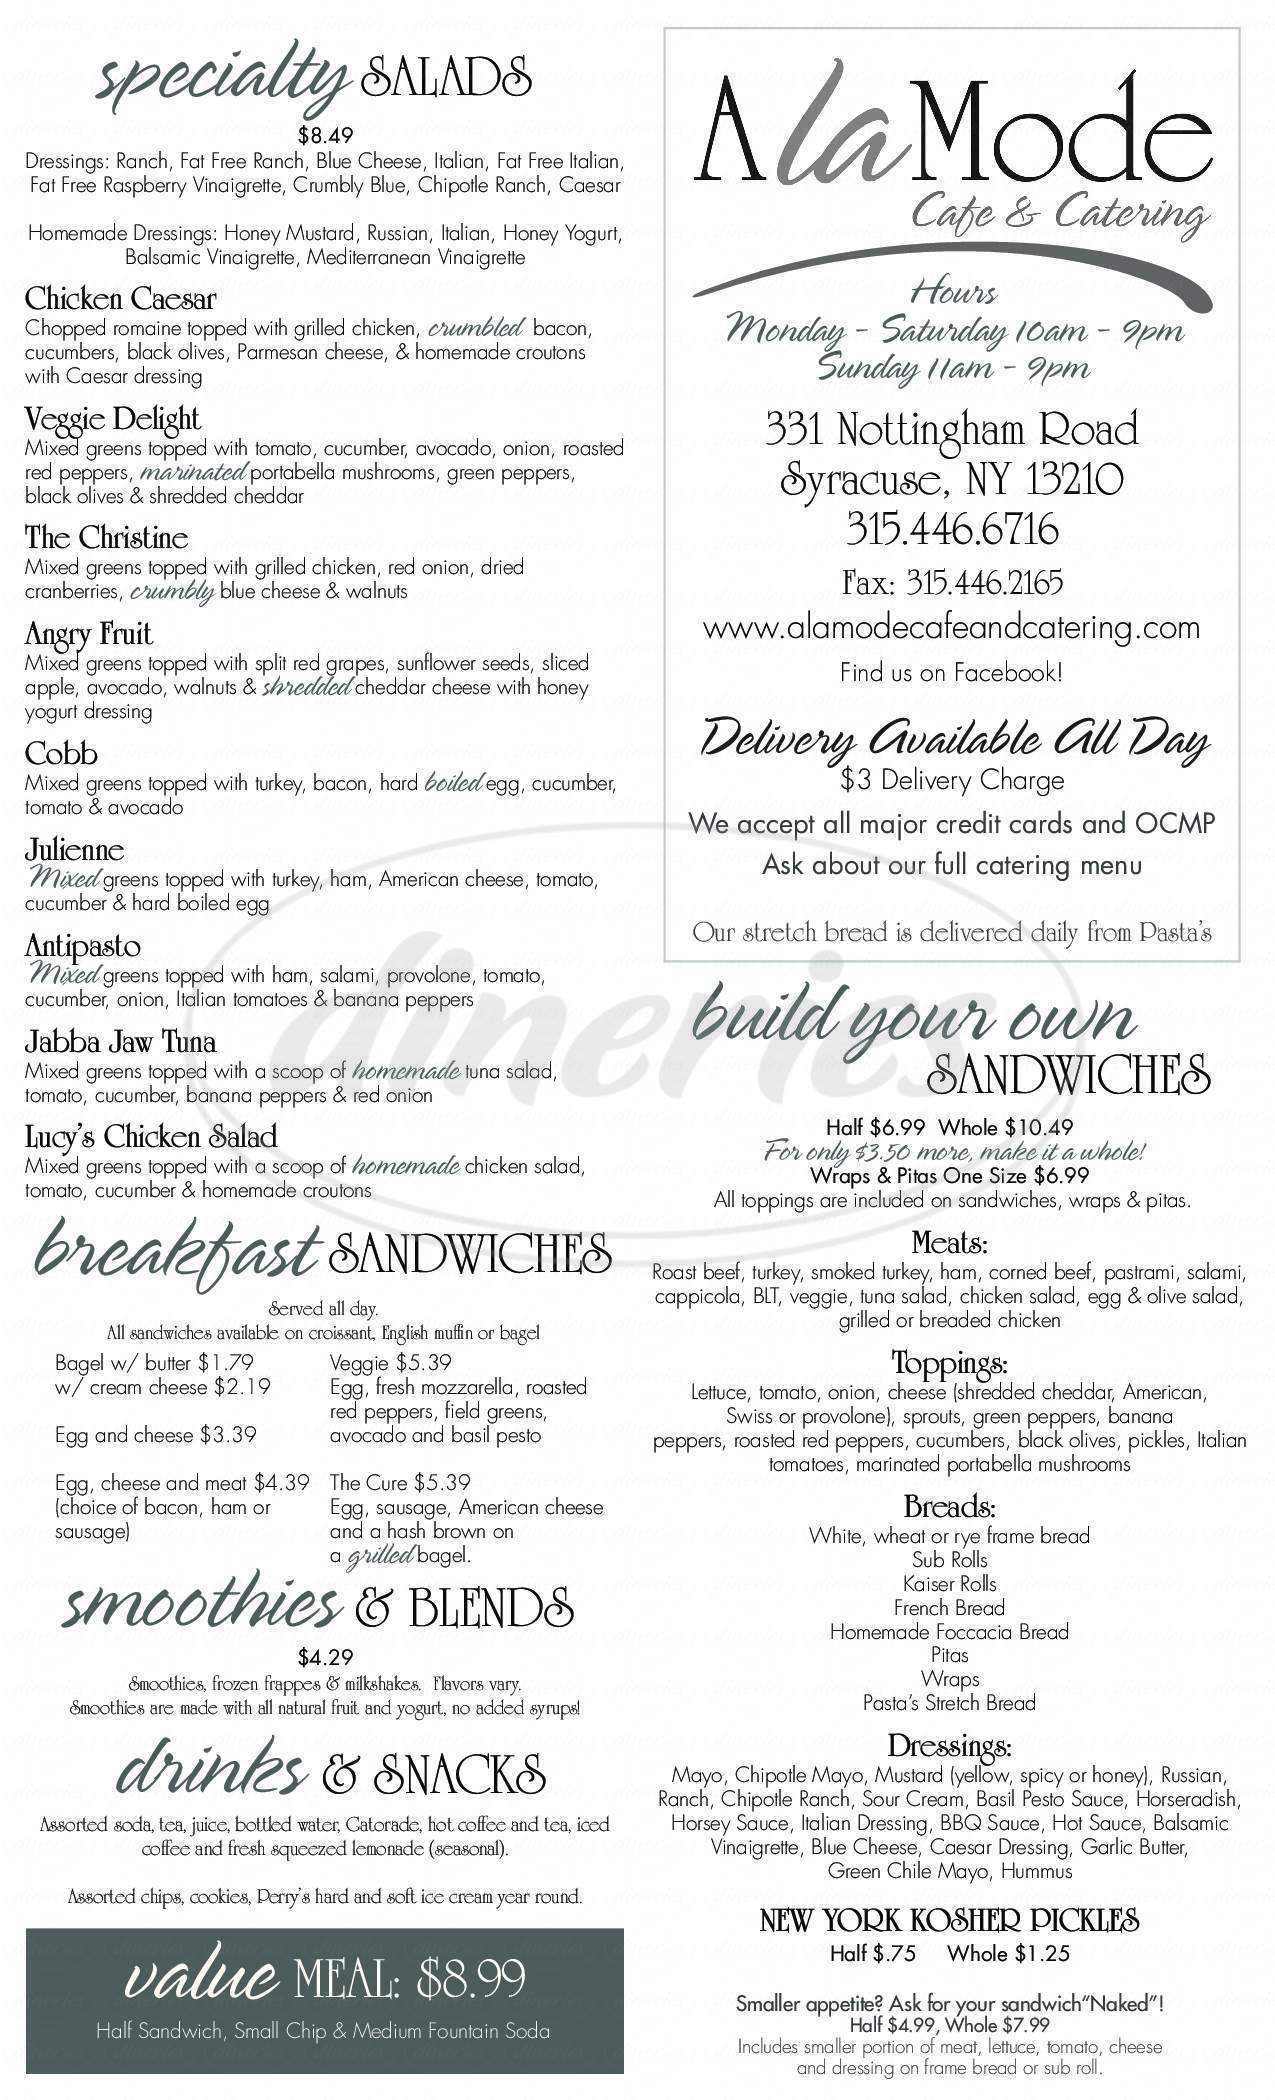 menu for A La Mode Cafe & Catering